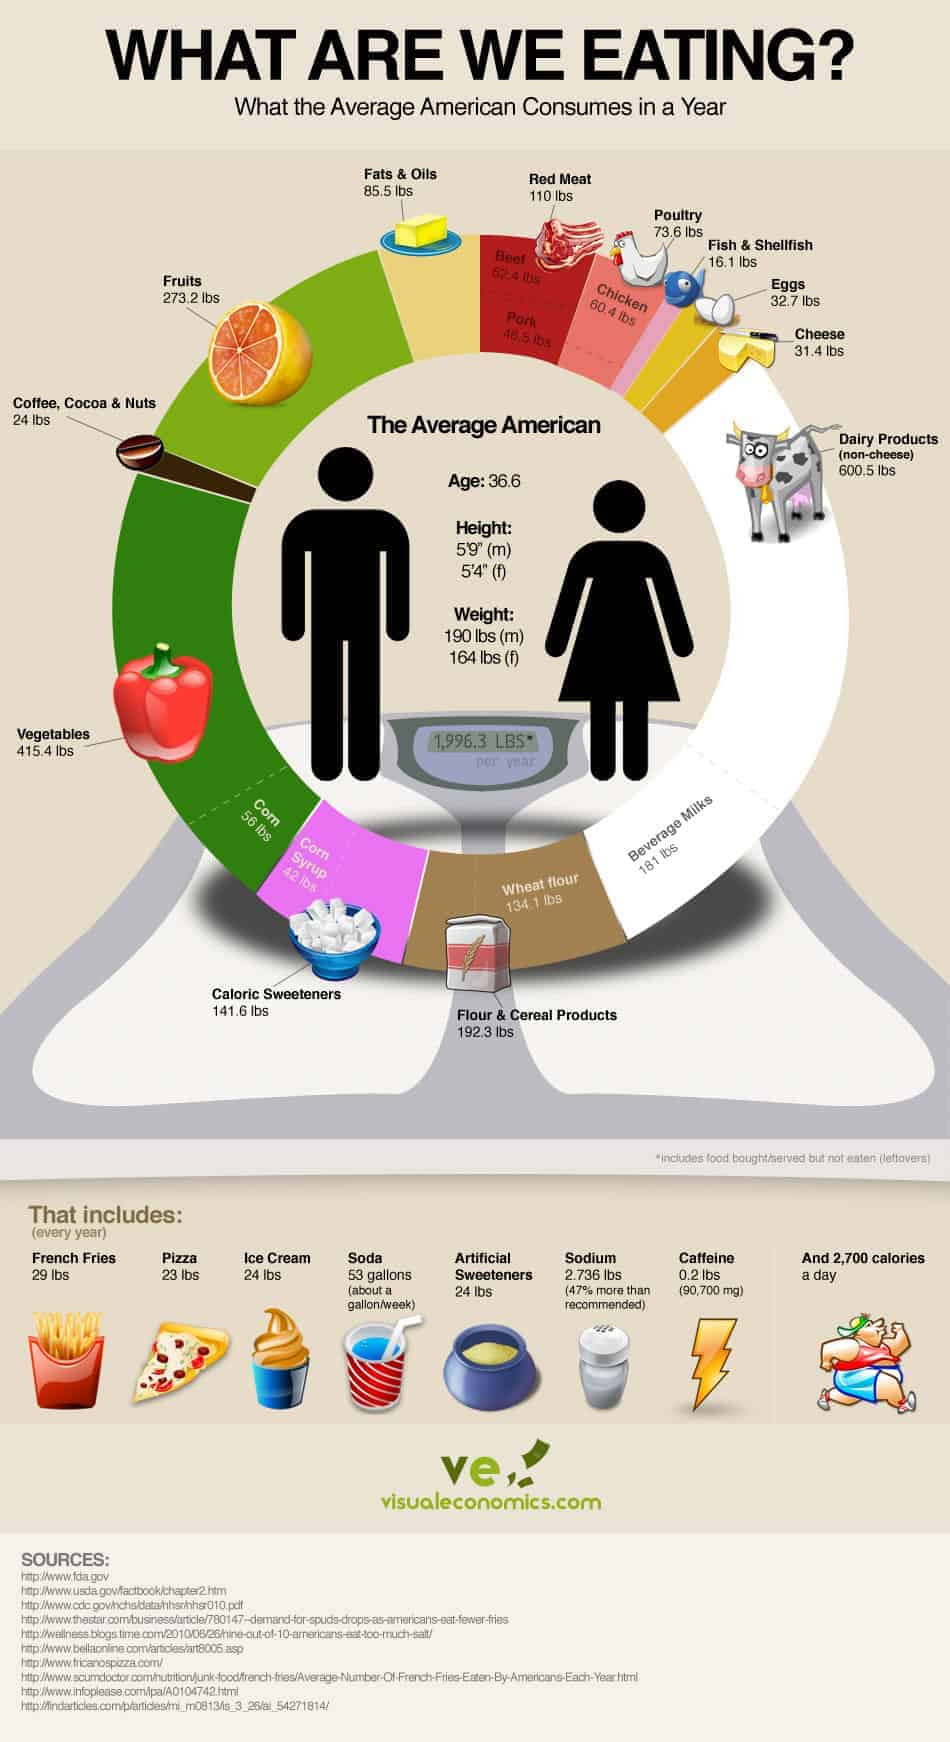 http://dailyinfographic.com/wp-content/uploads/2010/11/american-average-food-consumption.jpeg